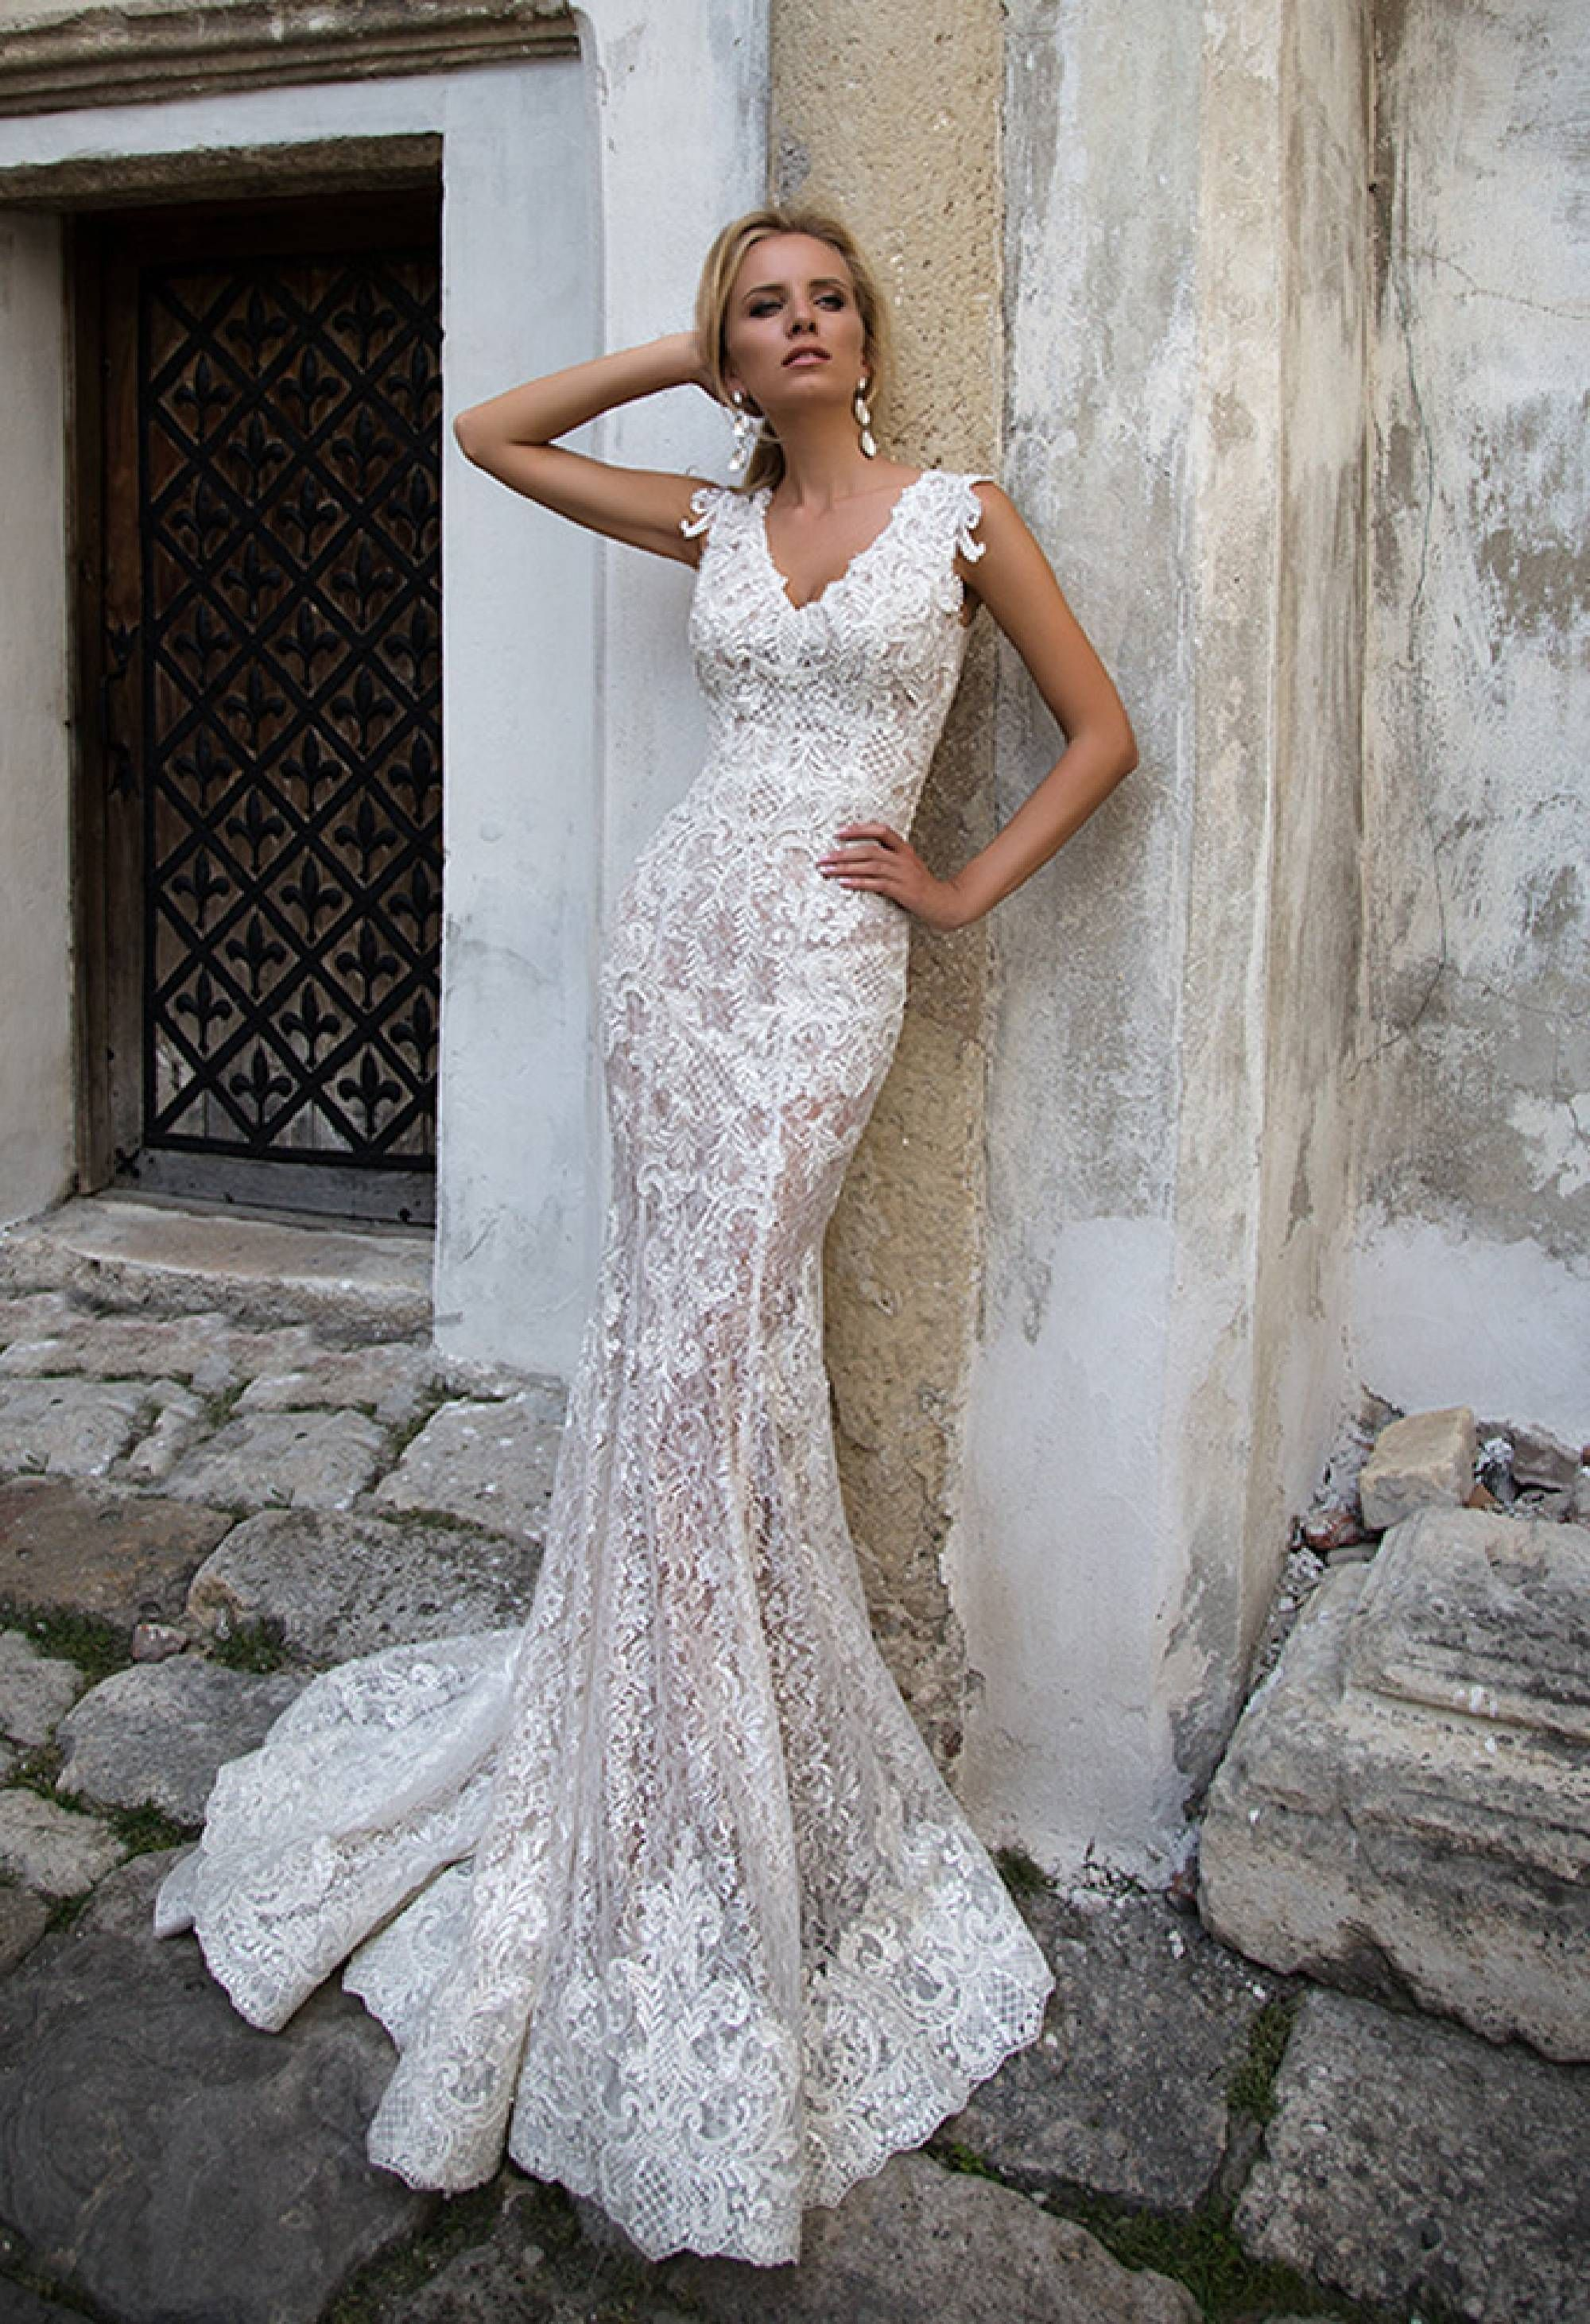 faef0072441 Wedding dress 2018 pre-collections by OKSANA MUKHA in Charmé Gaby Bridal  Gown boutique Tampa Bay FL